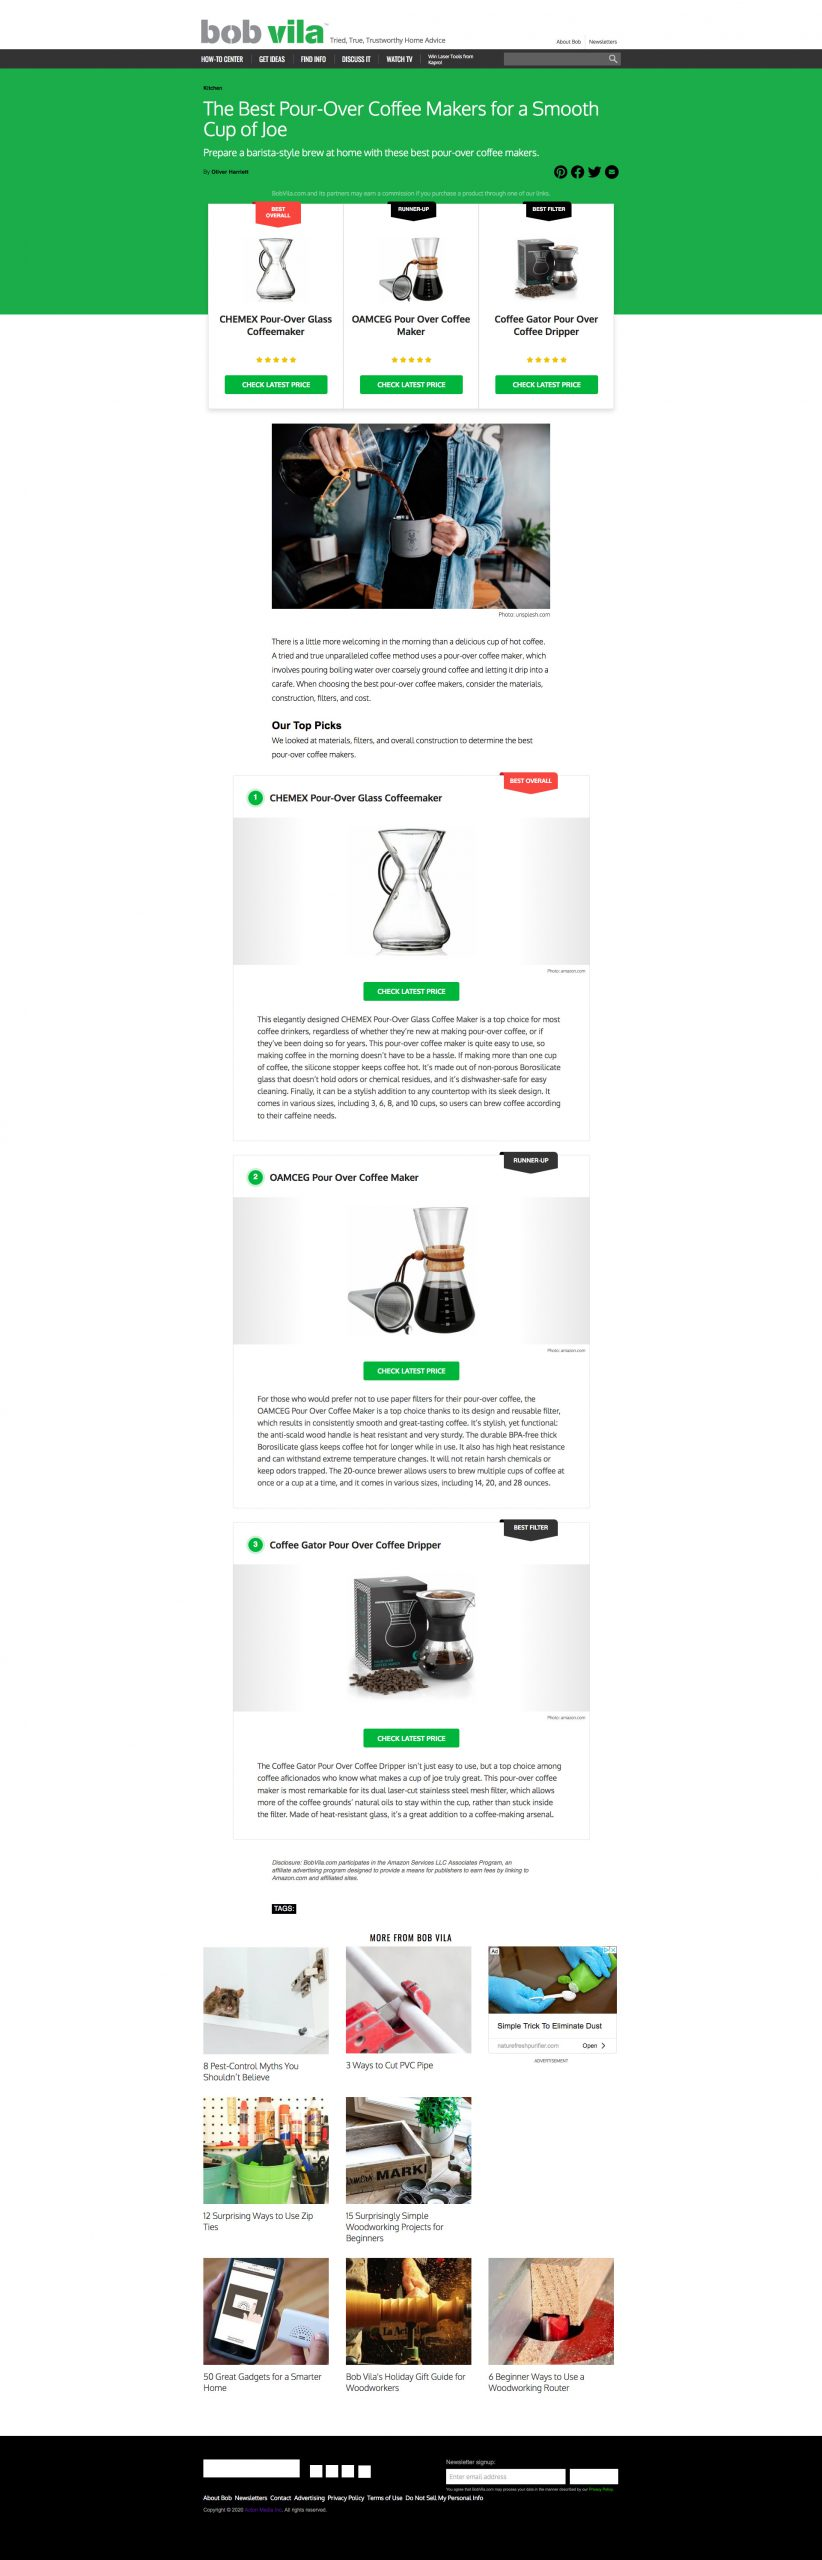 The Best Pour-Over Coffee Makers